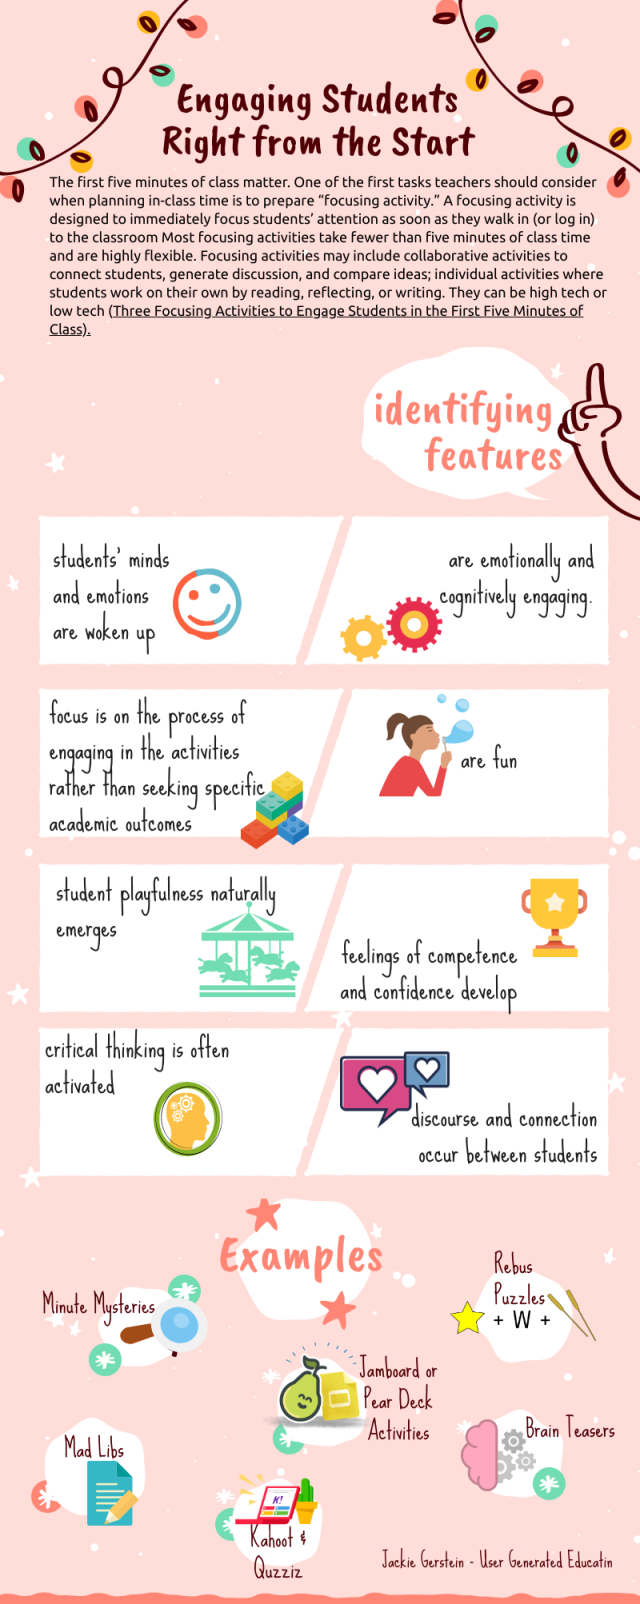 Engaging Students Right From the Start | User Generated Education